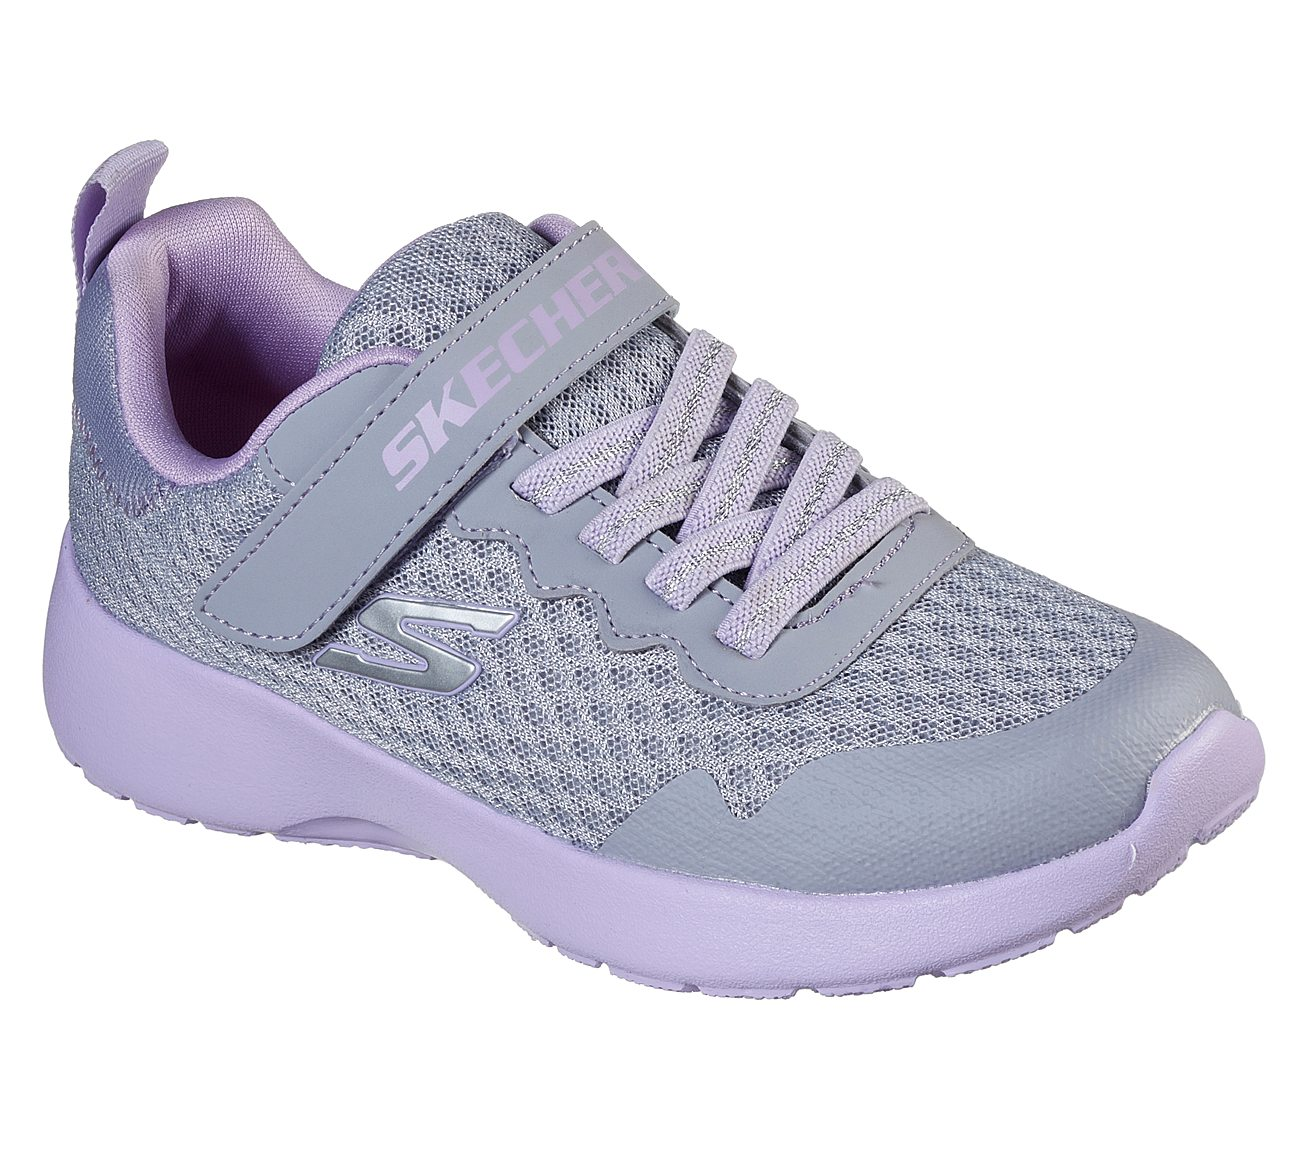 Skechers Womens Dynamight Trainers Running Shoes Elasticated Laces Lightweight